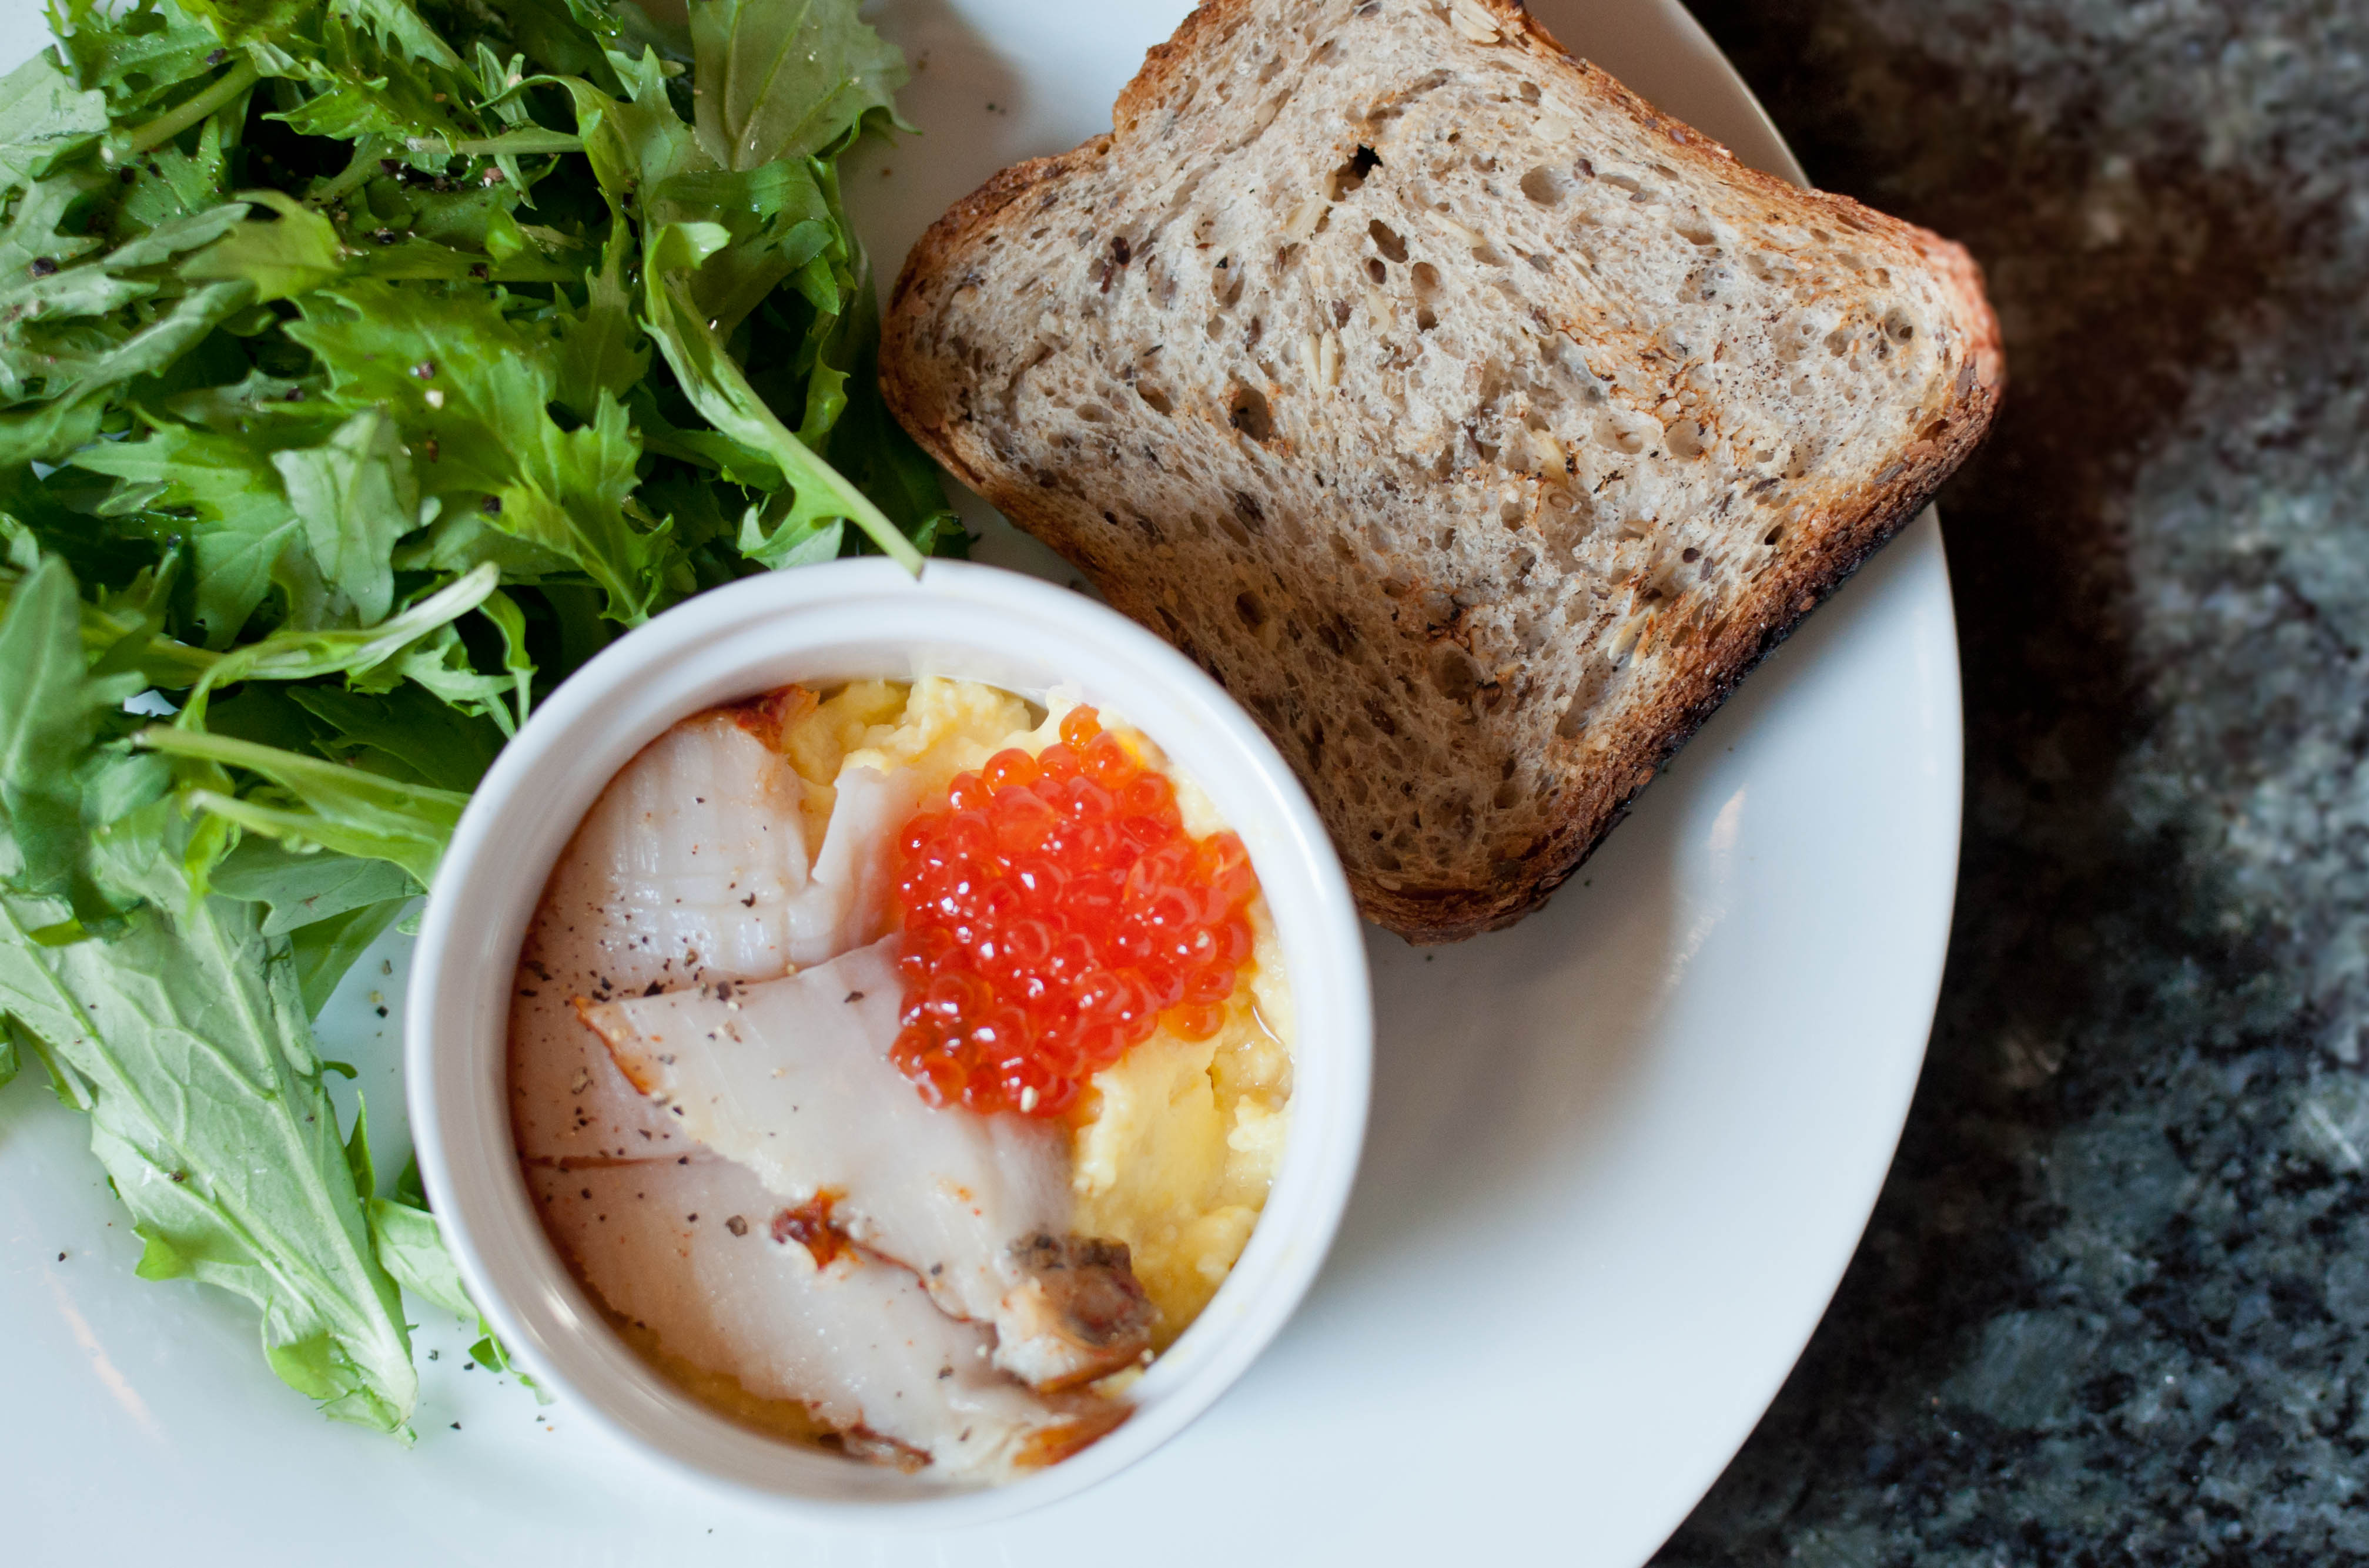 ... : Soft Scrambled Eggs, Sable and Salmon Roe | Sometimes I Crave